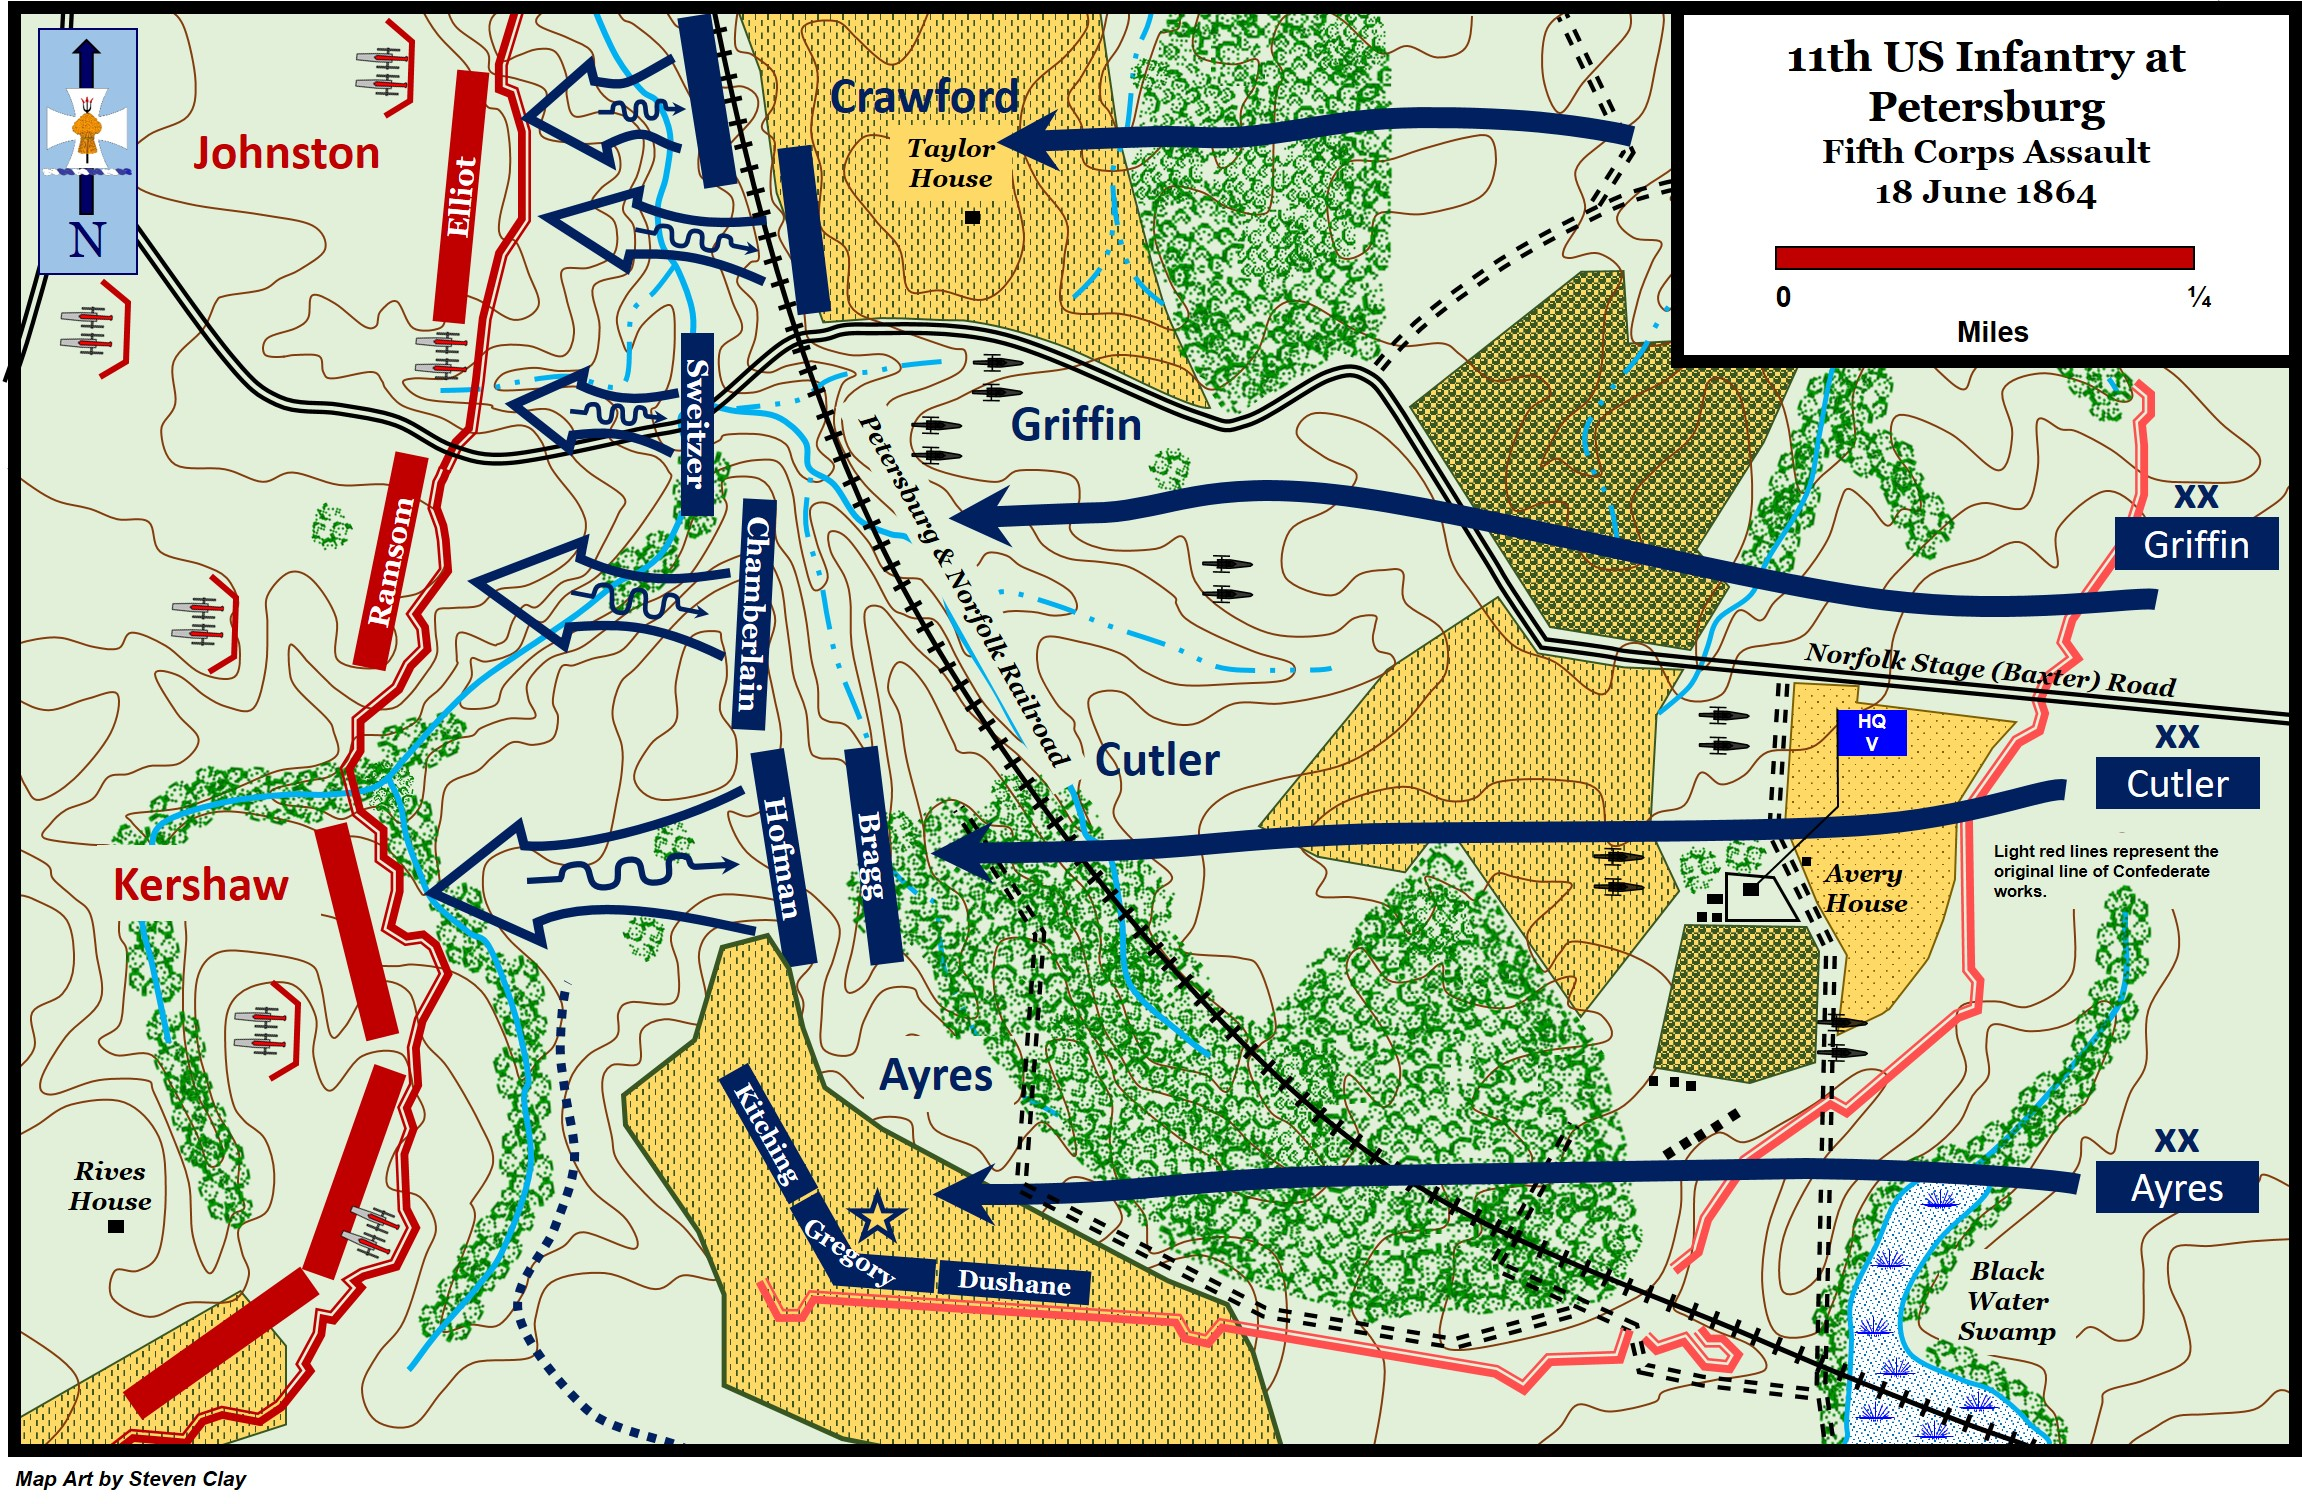 The Second Battle of Petersburg, Fifth Corps Assault: June 18, 1864 (16th Infantry Regiment Association)